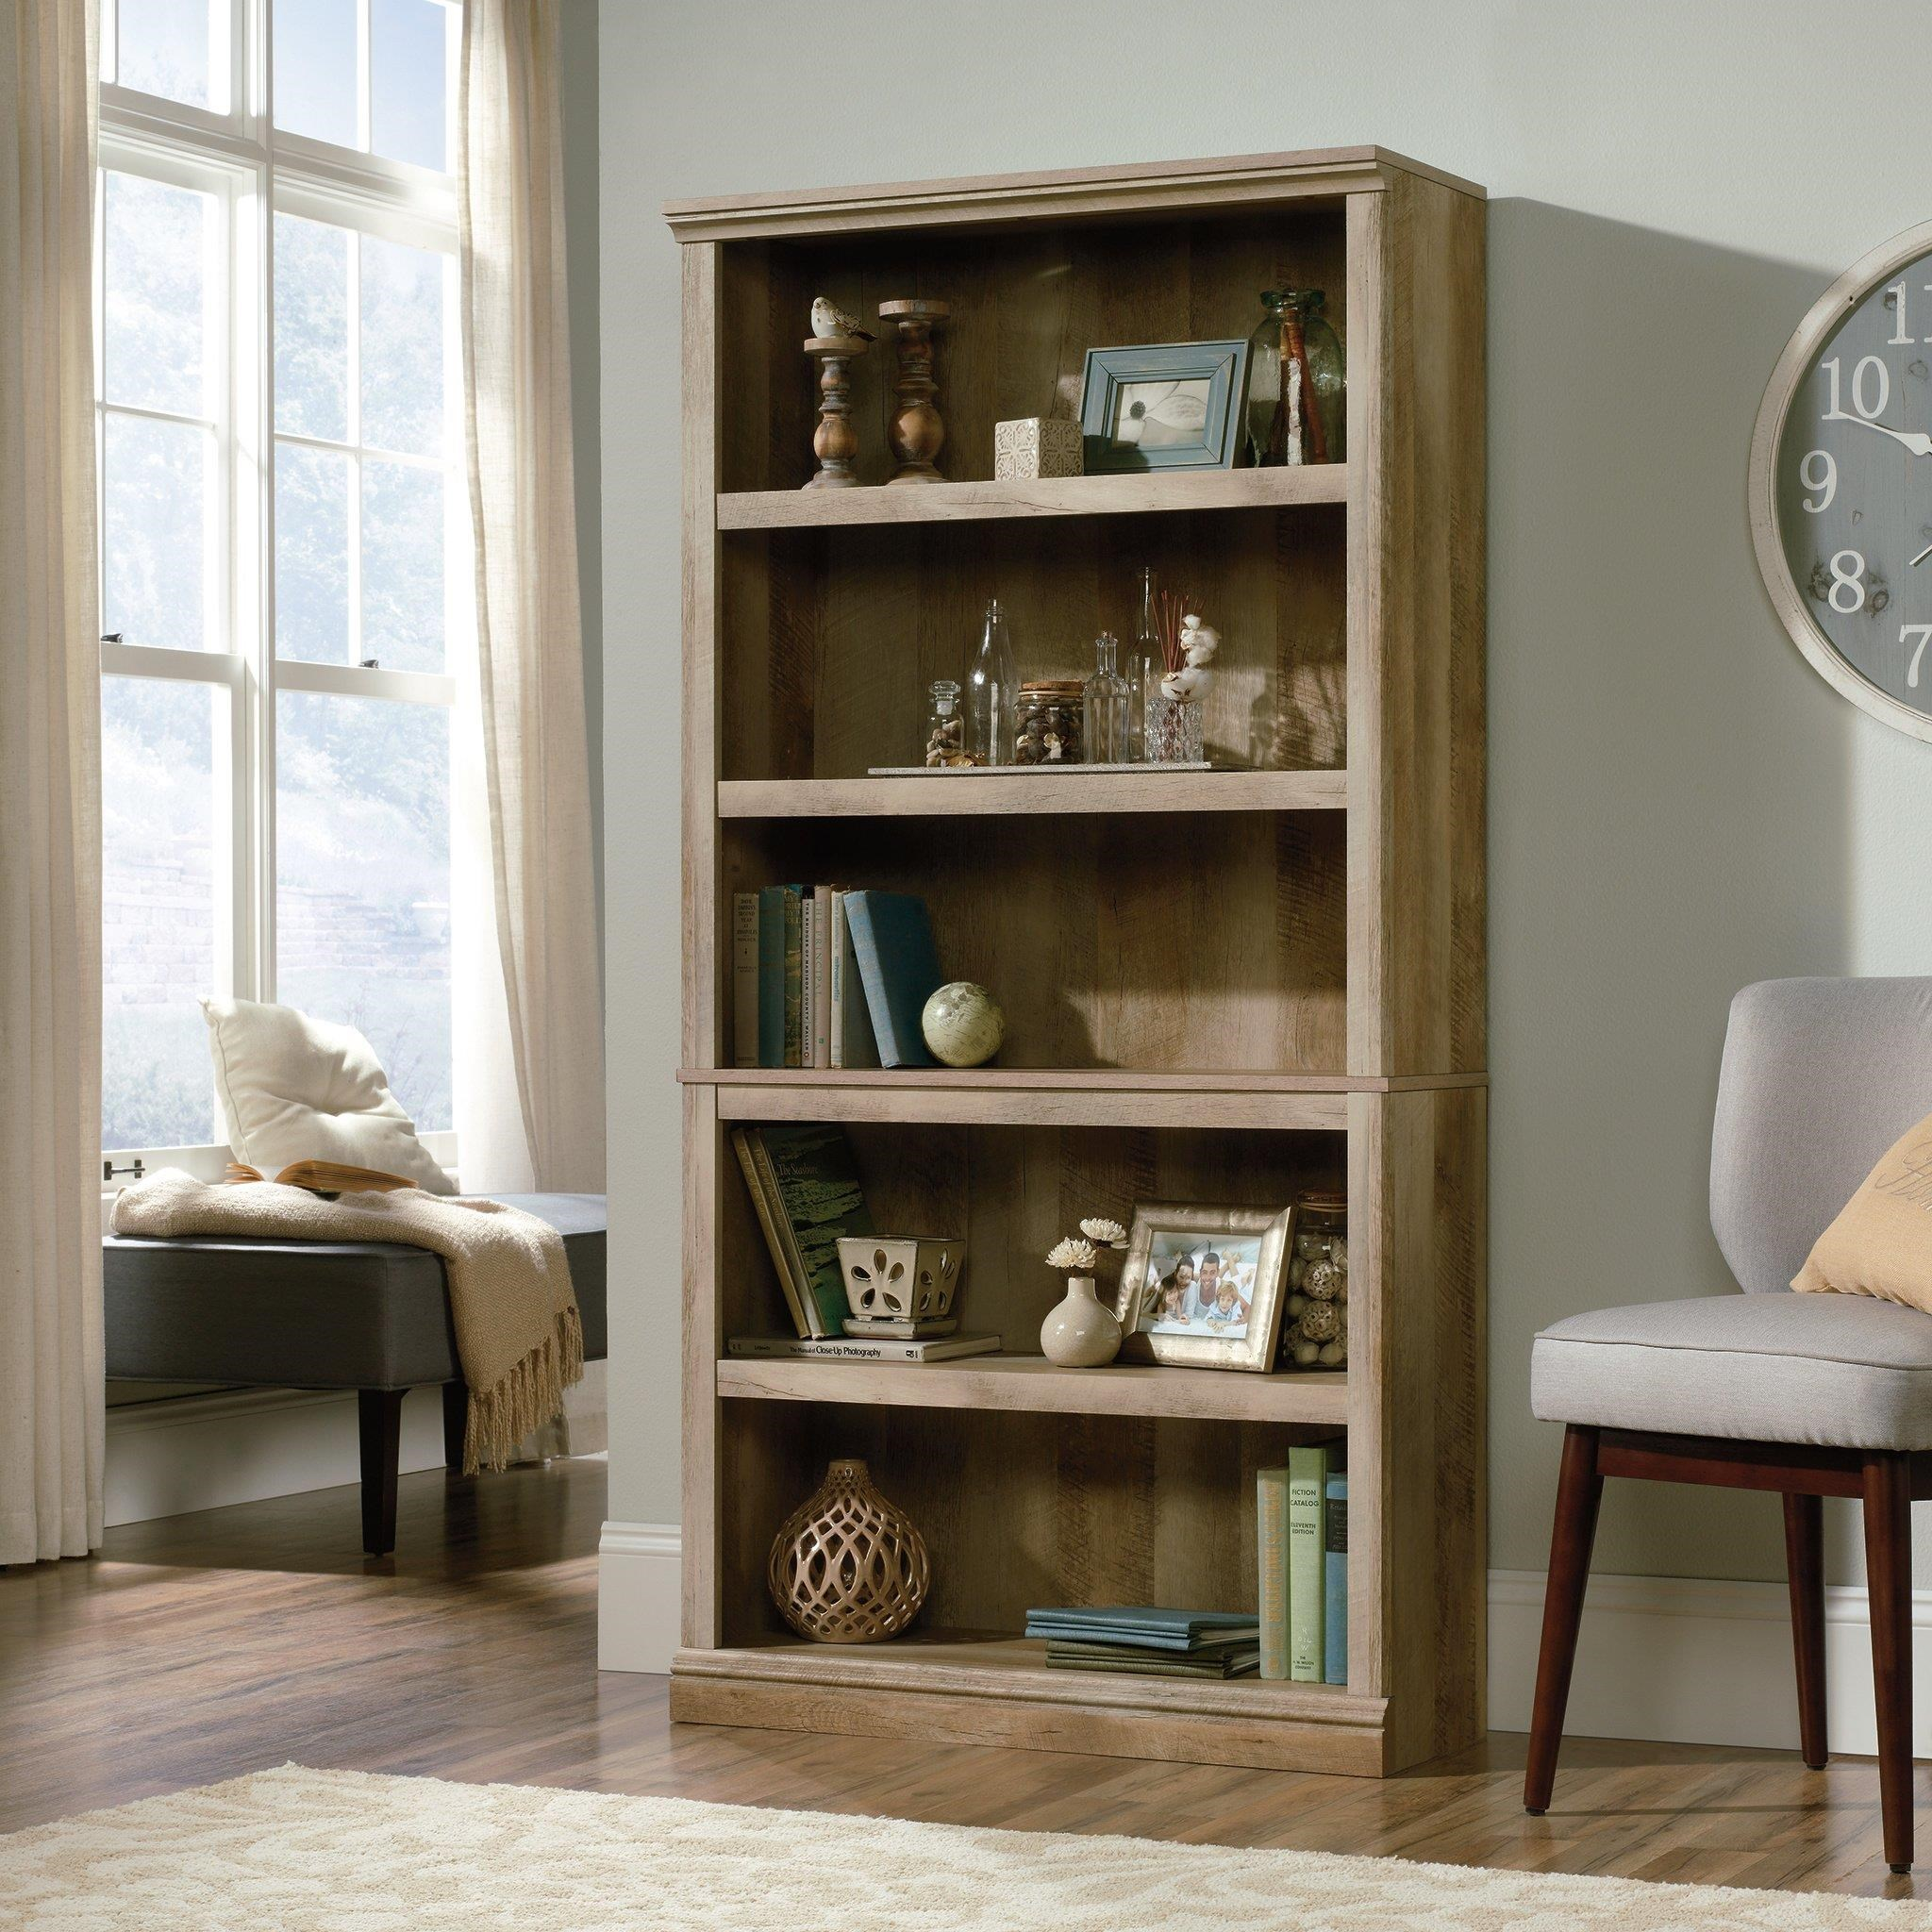 Select 5 Shelf Bookcase by Sauder at Darvin Furniture